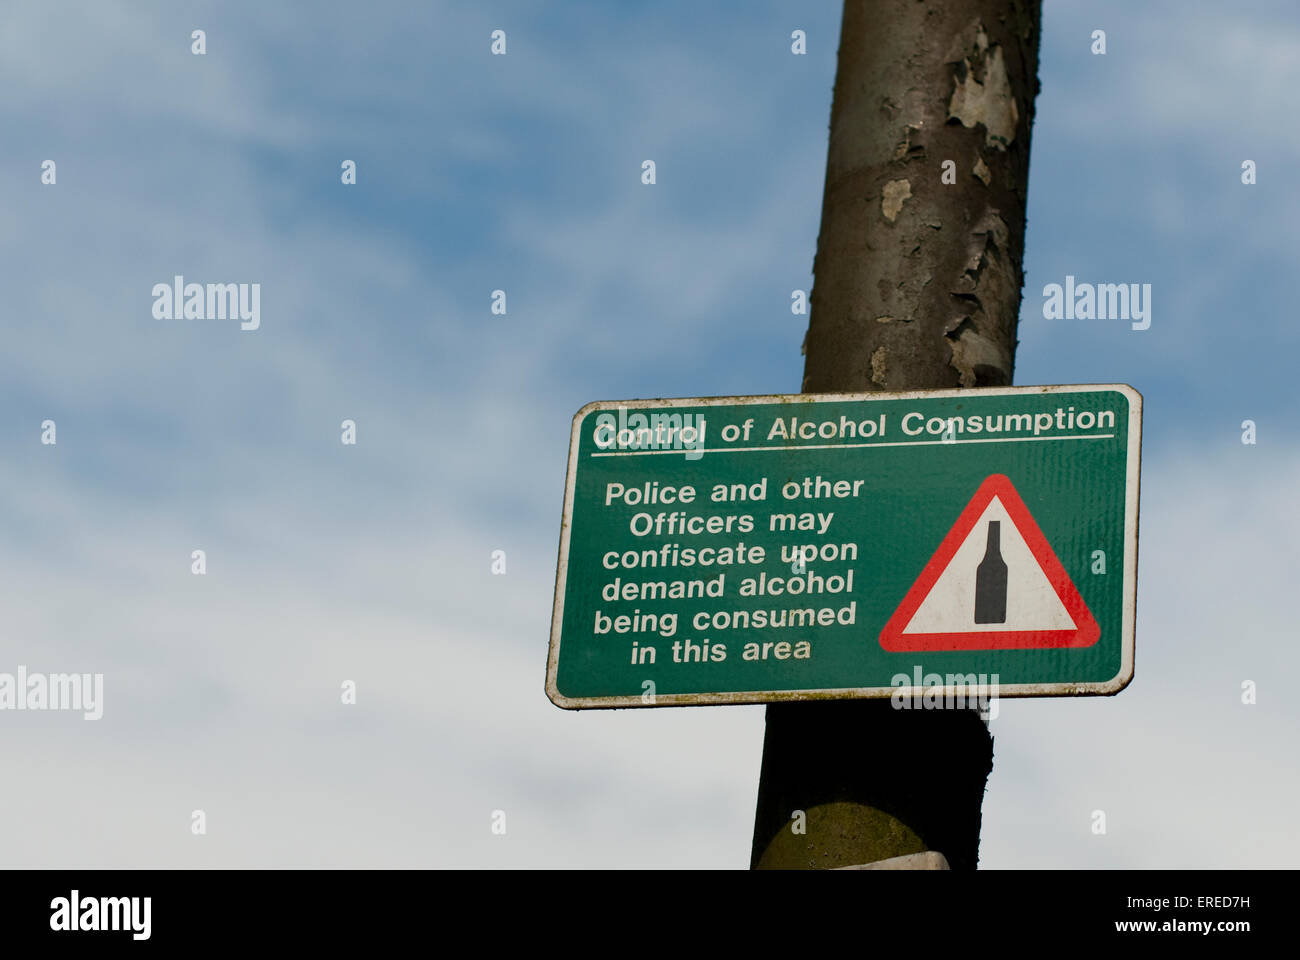 Documentary image of a control of alcohol consumption sign on a lamp-post with flaking paint against a blue sky. - Stock Image